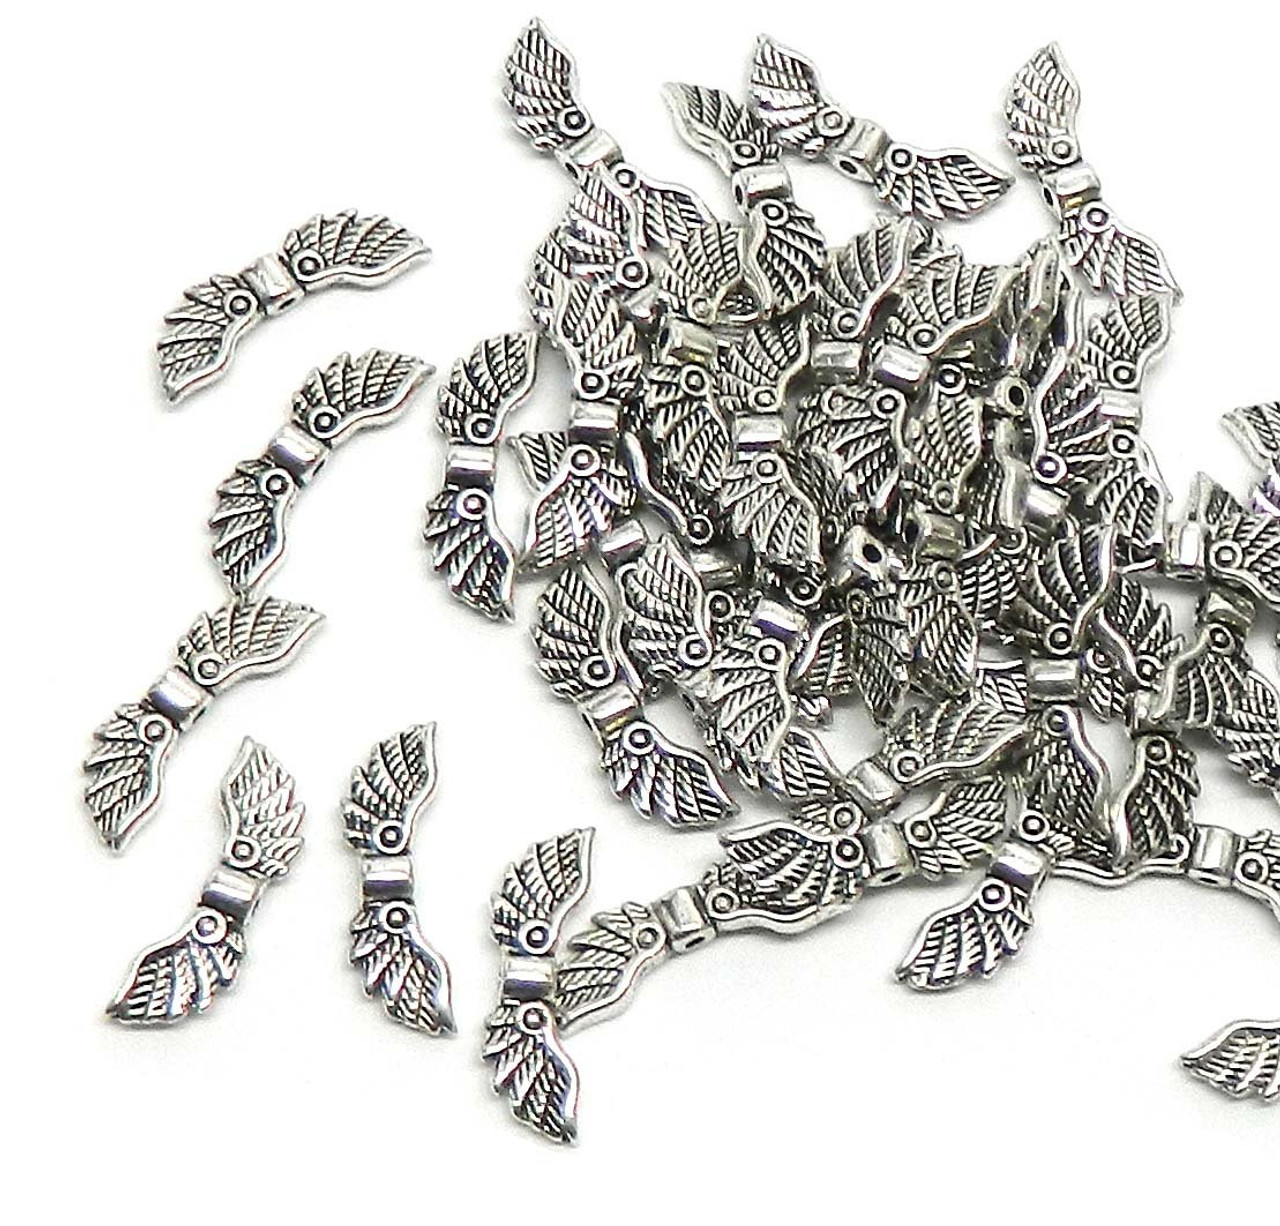 48 Angel Wings Antiqued Silver Beads Cast Zinc Metal Beads 22x7mm